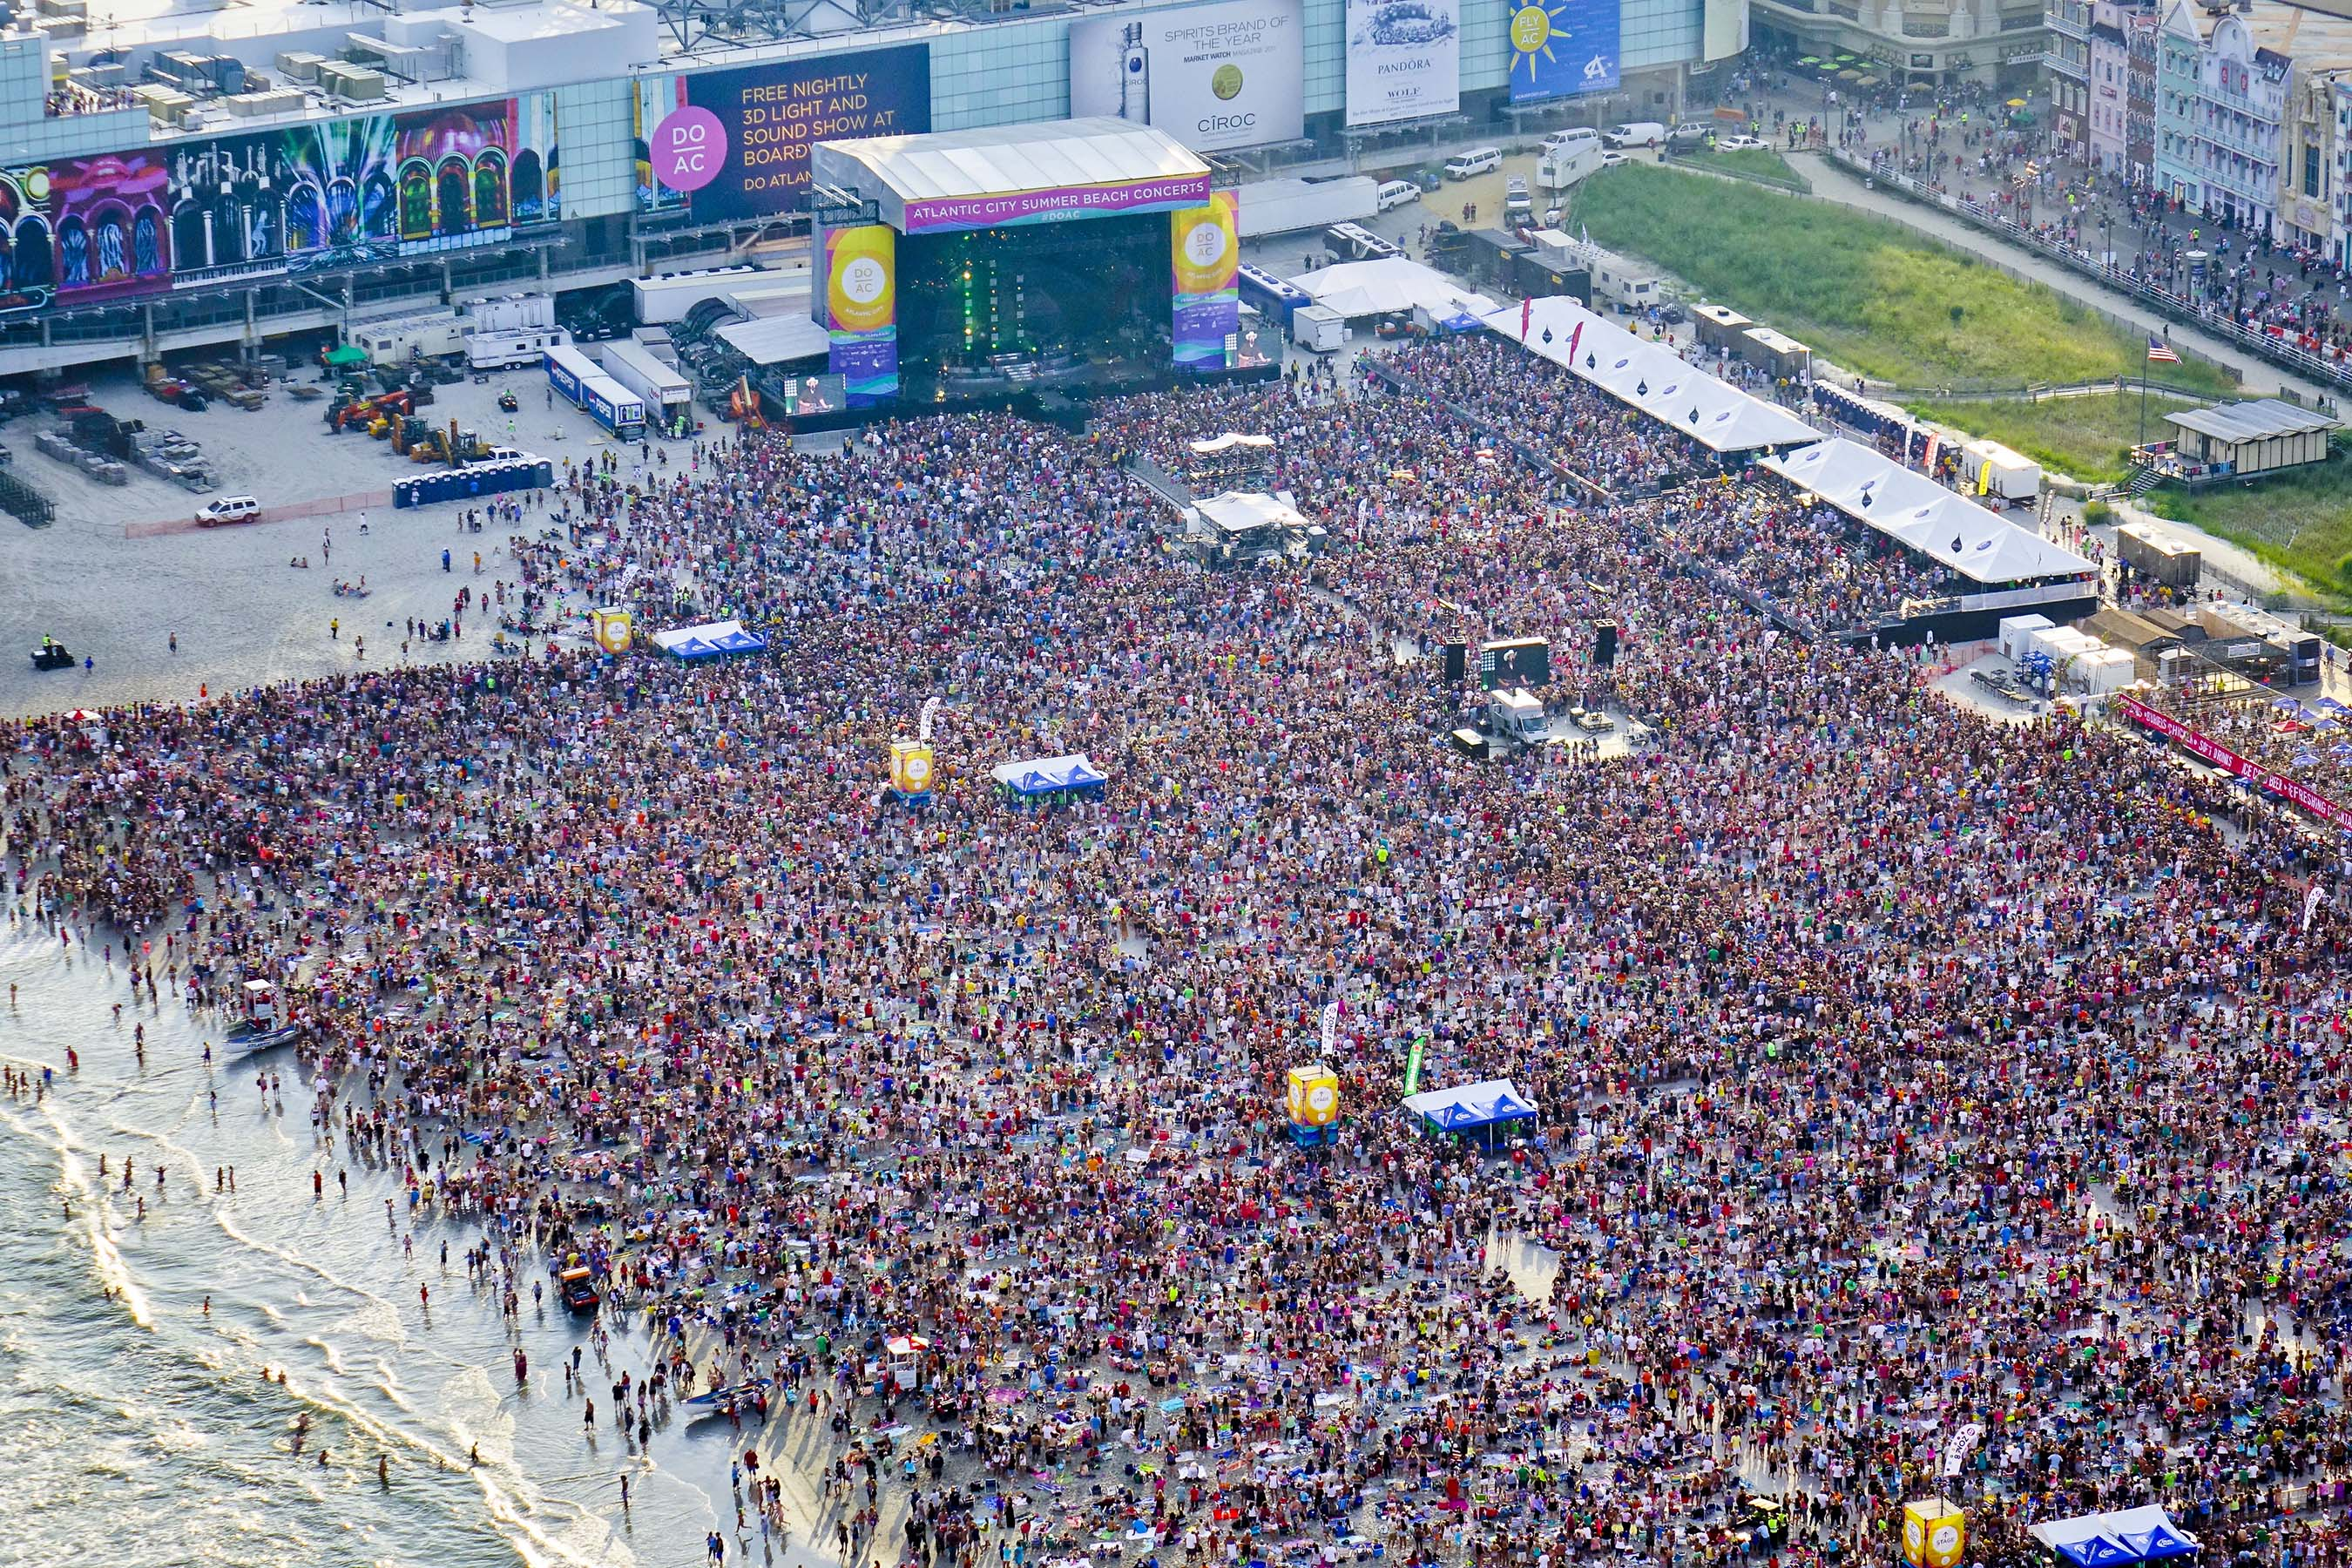 More Than 65 000 People Attended A Free Beach Concert With Blake Shelton In Atlantic City July 31 2017 Photo Credit Bob Krist Aca